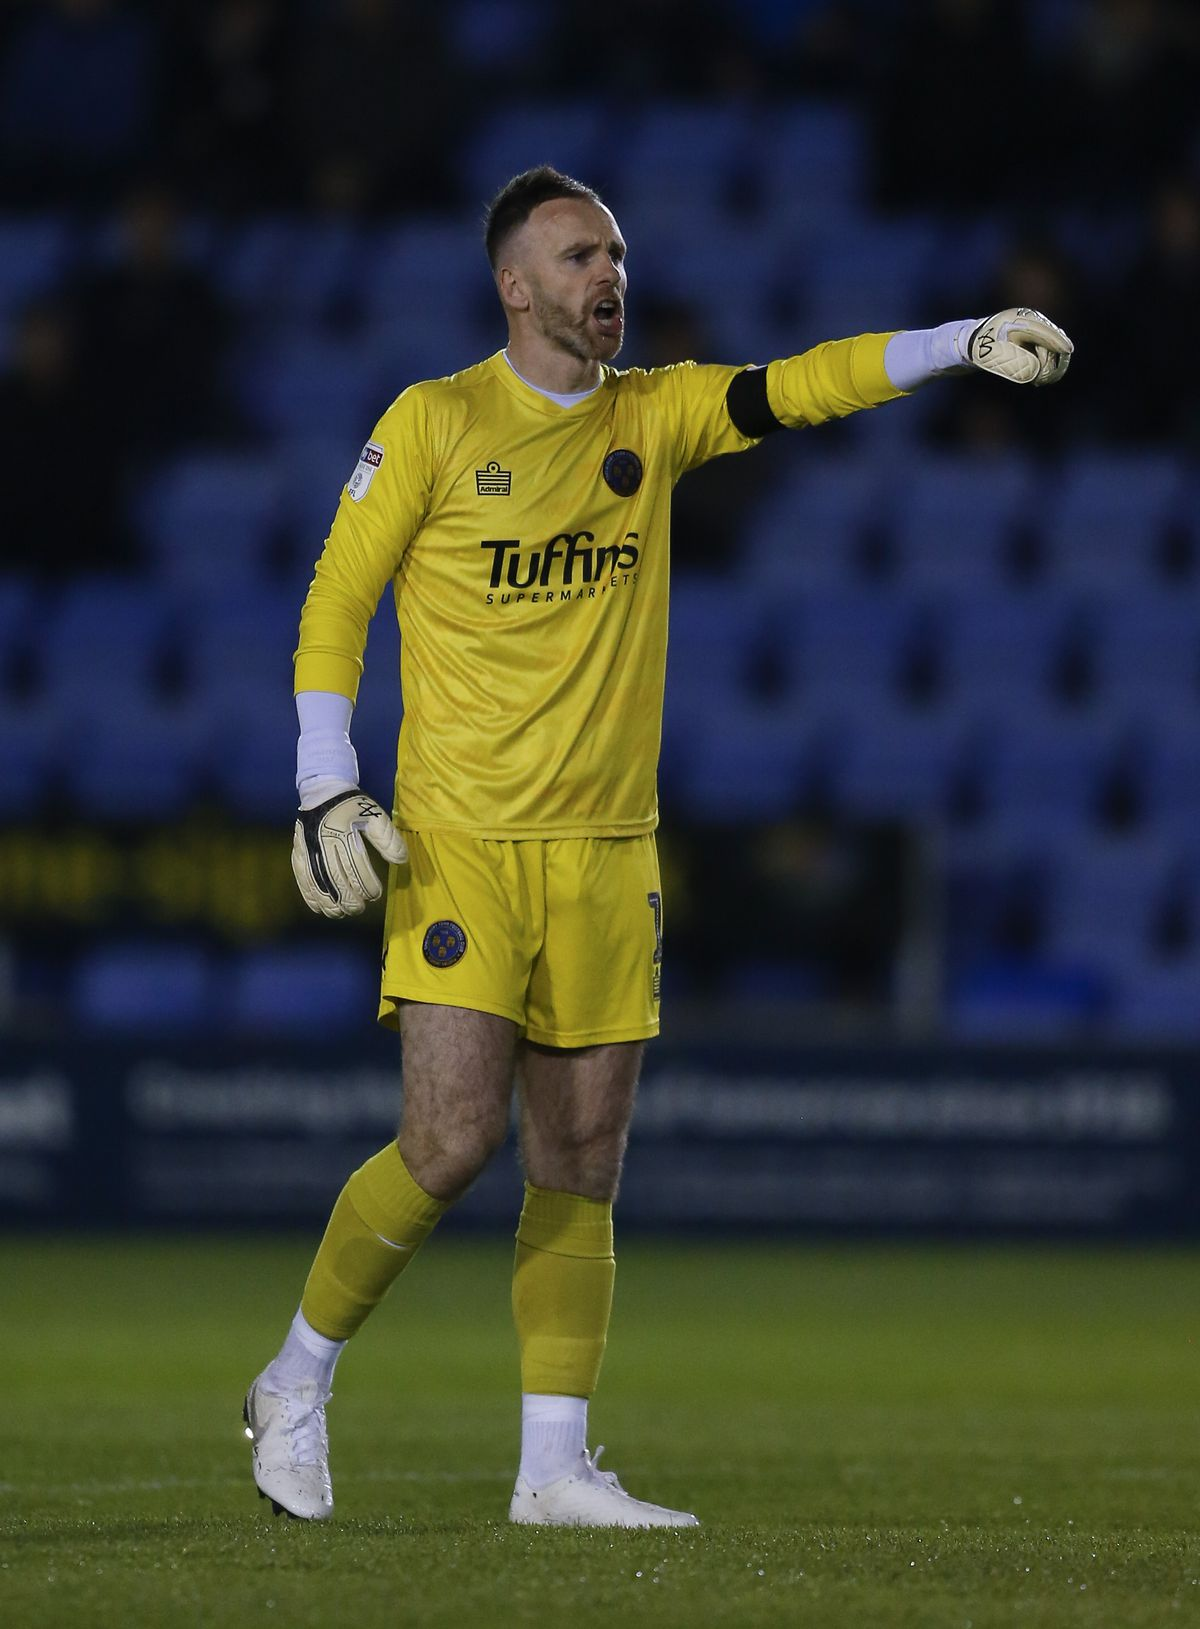 Joe Murphy will be in goal for Shrewsbury in Saturday's FA Cup tie at Bristol City (AMA)